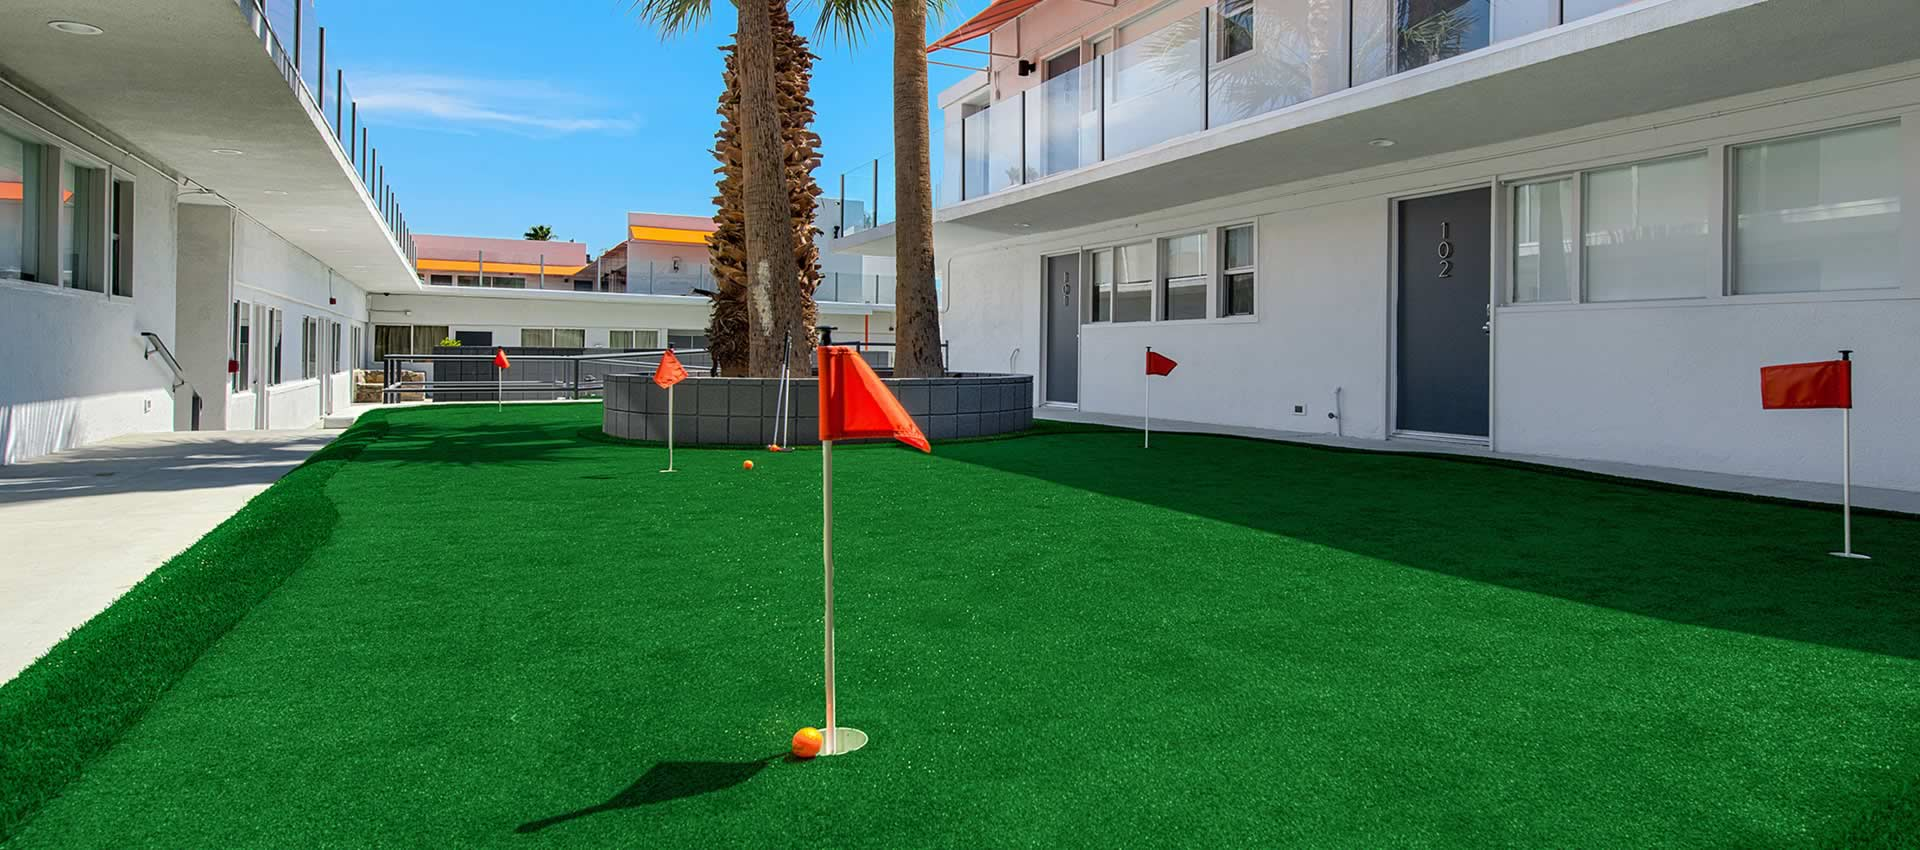 The putting green among the rooms